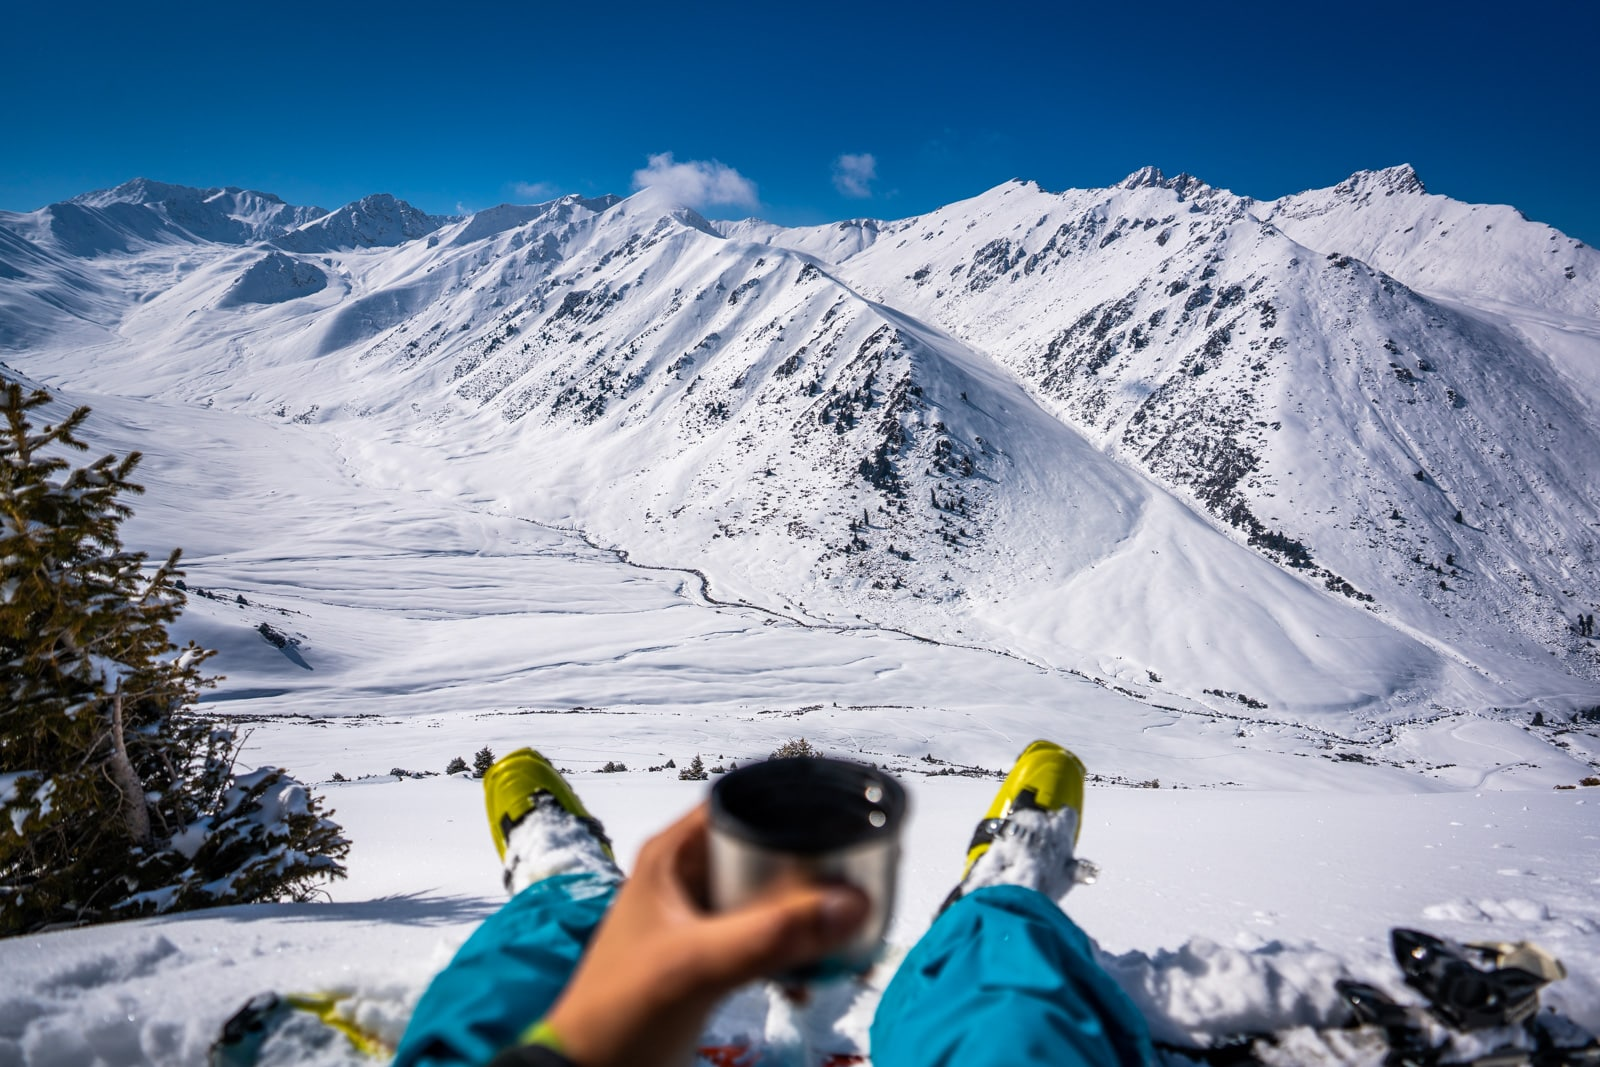 Skier overlooking mountains in Boz Uchuk, Kyrgyzstan in winter